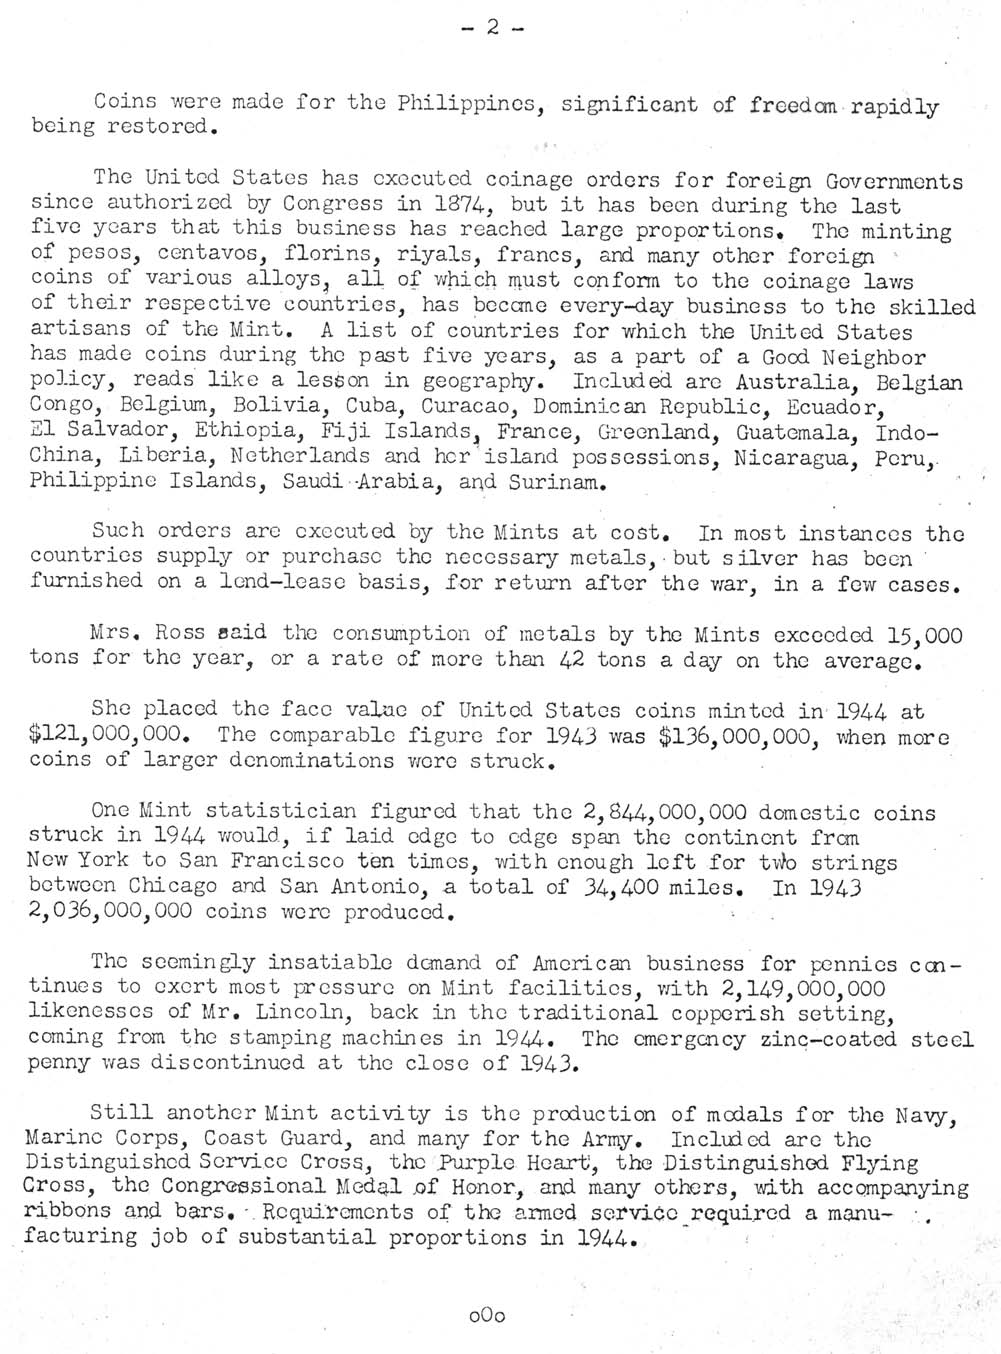 Historic Press Release: Wartime Contribution to Foreign Coinage, Page 2